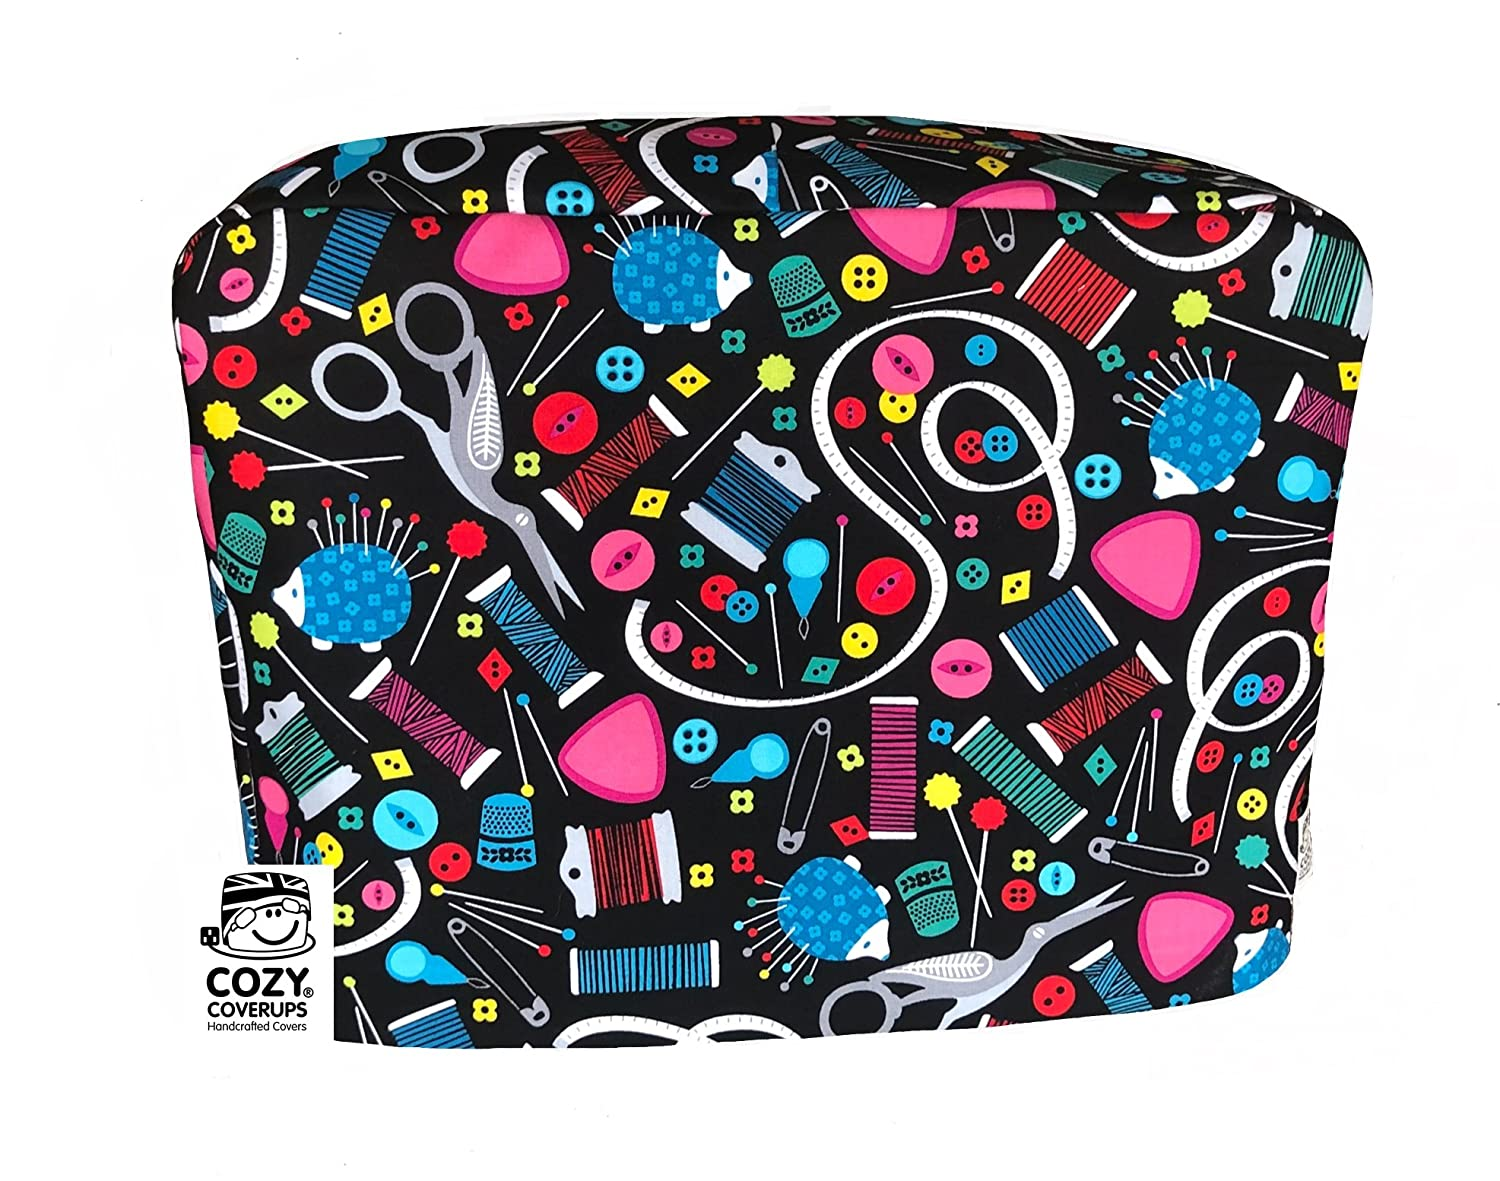 CozyCoverUps Handmade Sewing Machine Dust Cover in Modern Haberdashery CoolCozy Covers